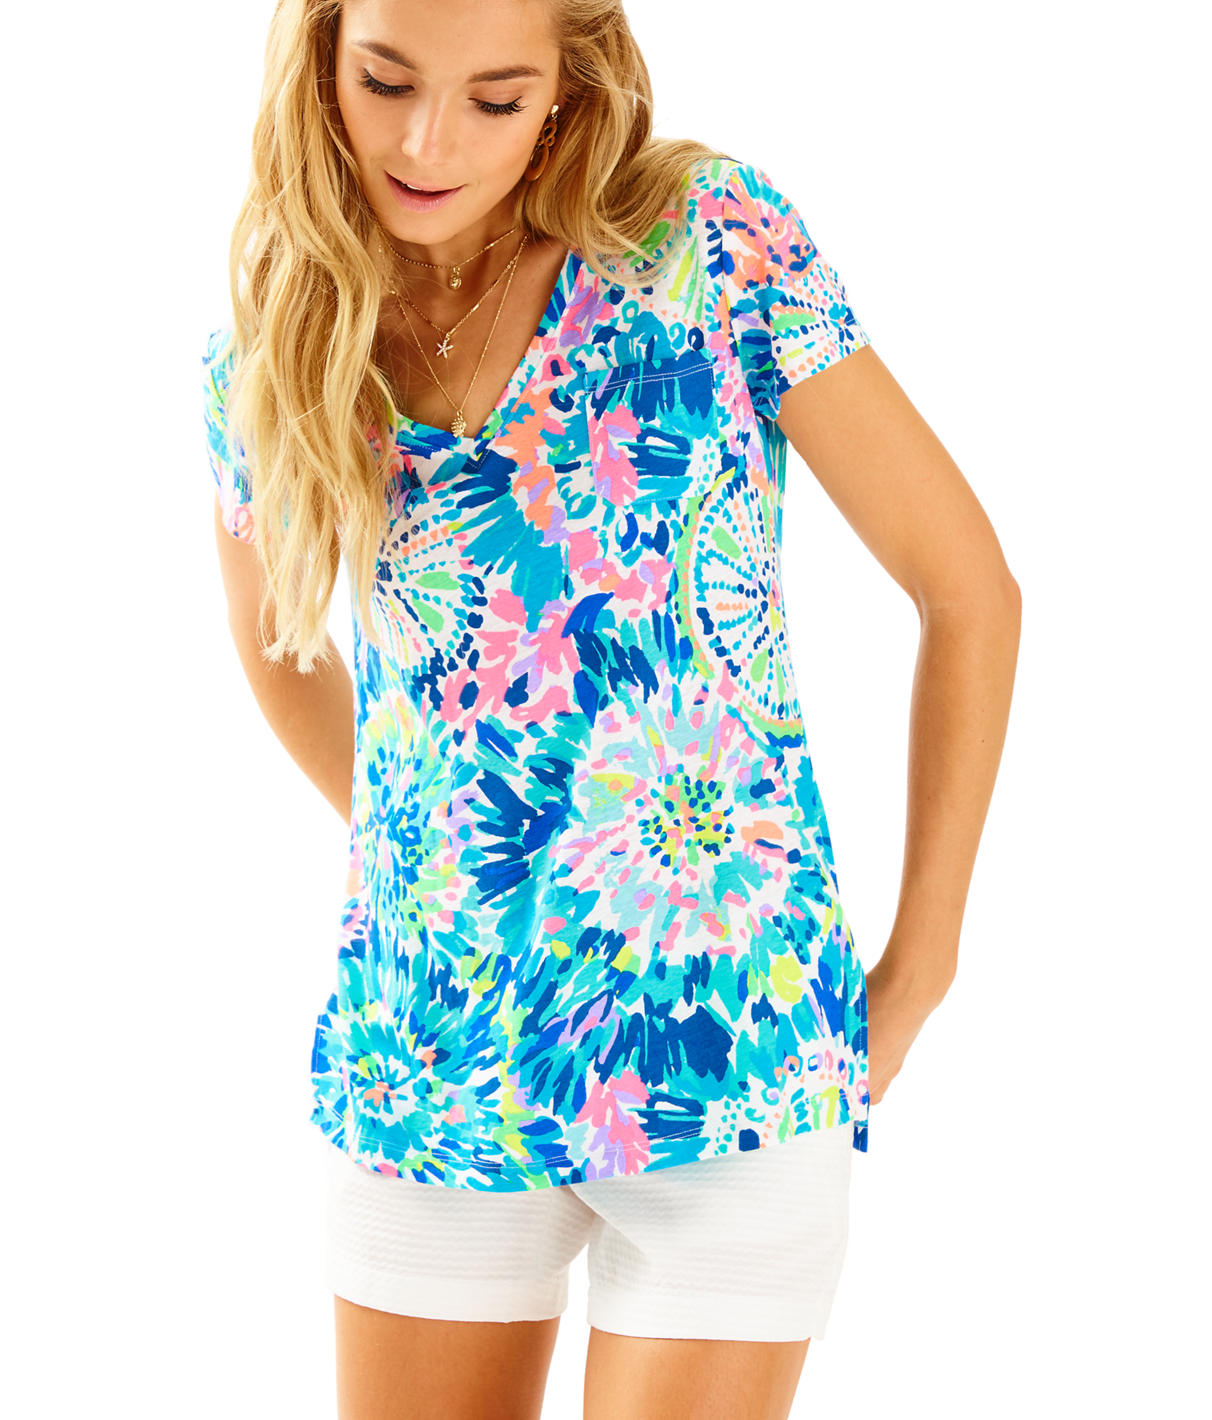 Lilly Pulitzer Meredith Short Sleeve Tee